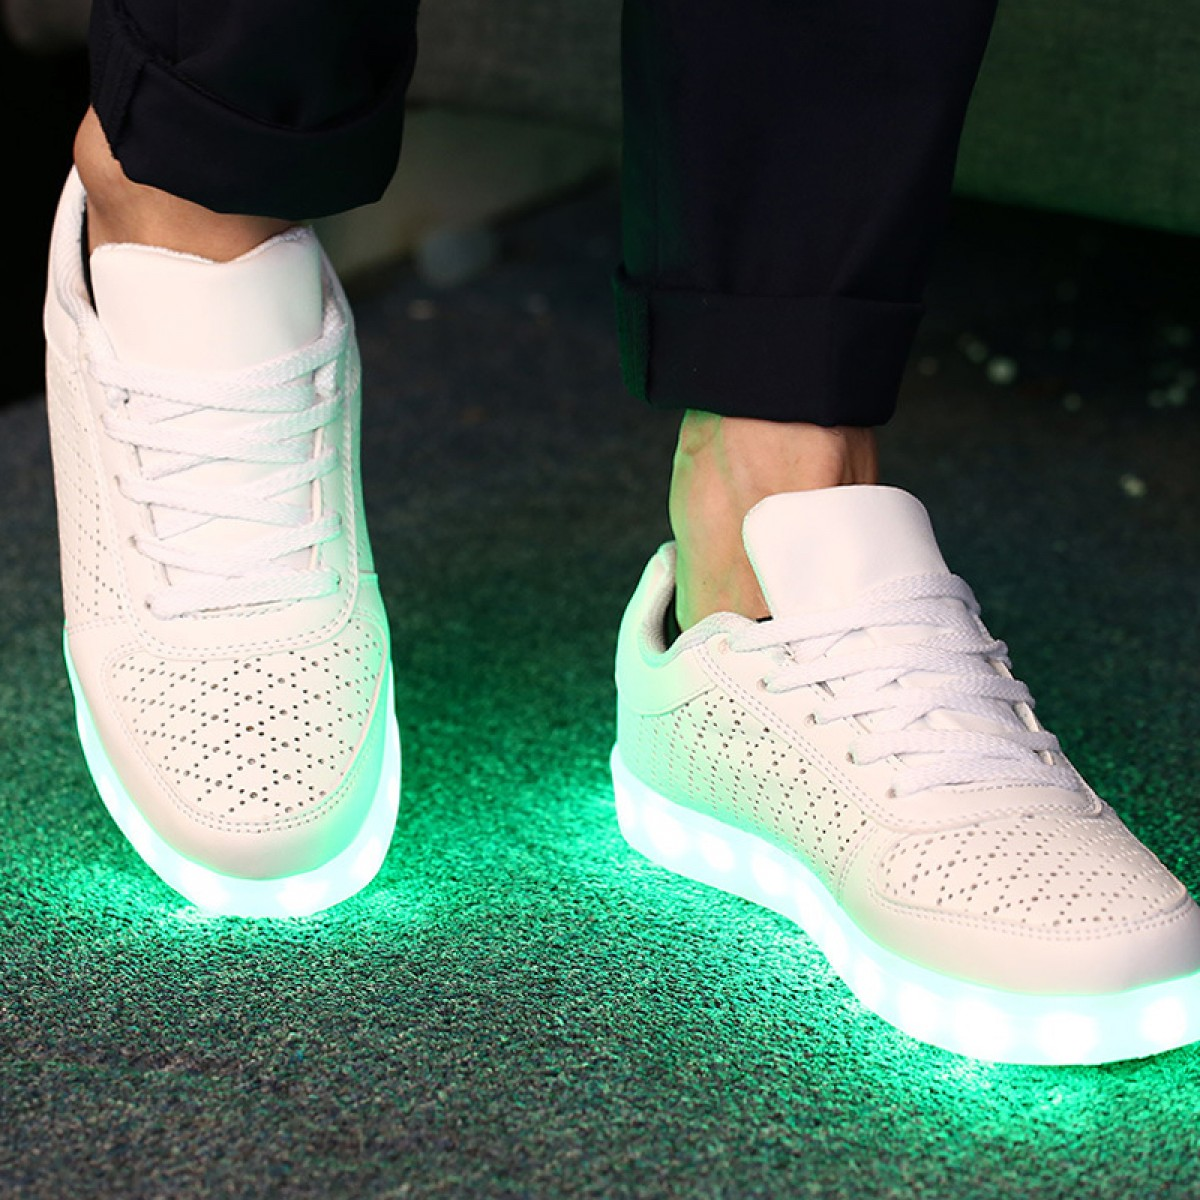 release date bdc15 42cf2 Buy LED Light Up Shoes Lighting Sneaker Sports Shoes Adult Light Up Shoes  Women Shoes under ...